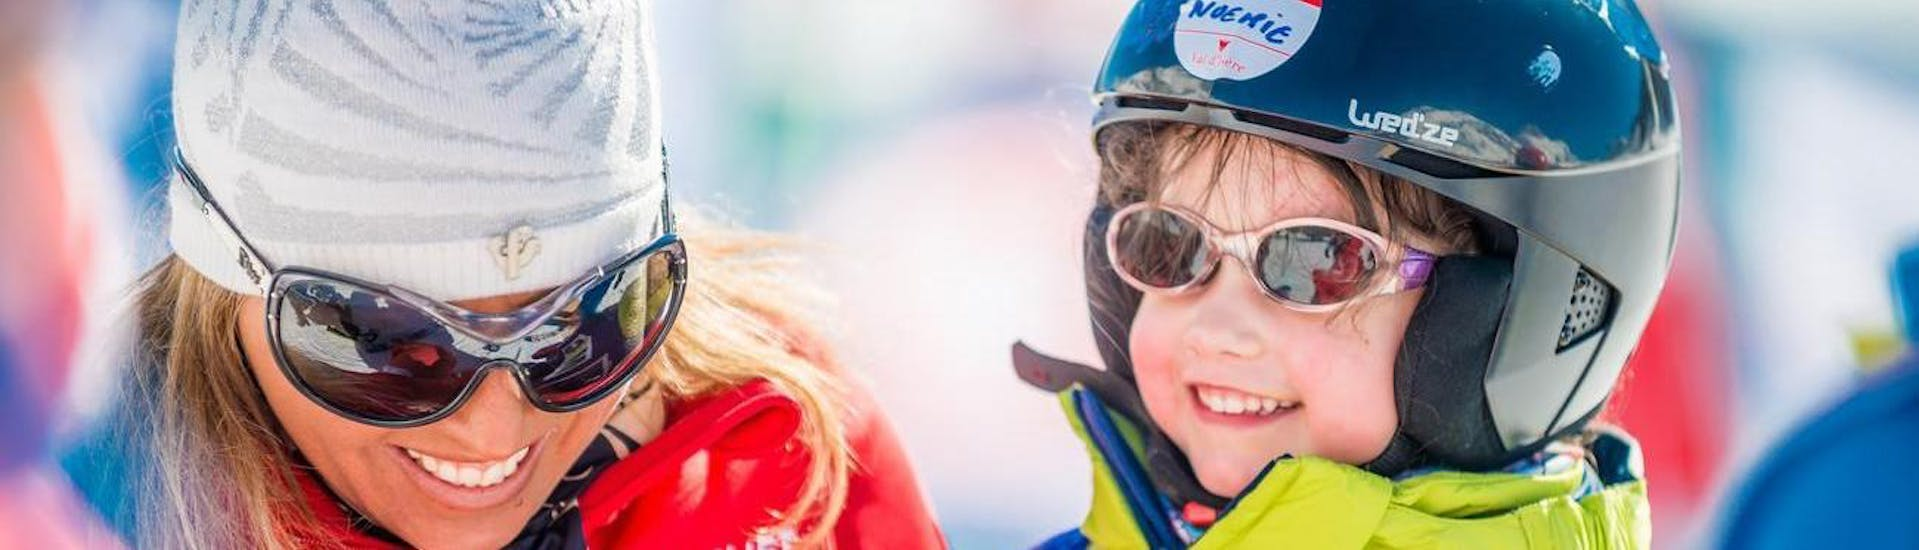 Under the supervision of an instructor from ESF Val d'Isère, a little skier makes fast progress during the tailored-made Private Ski Lessons for Kids - All Levels.